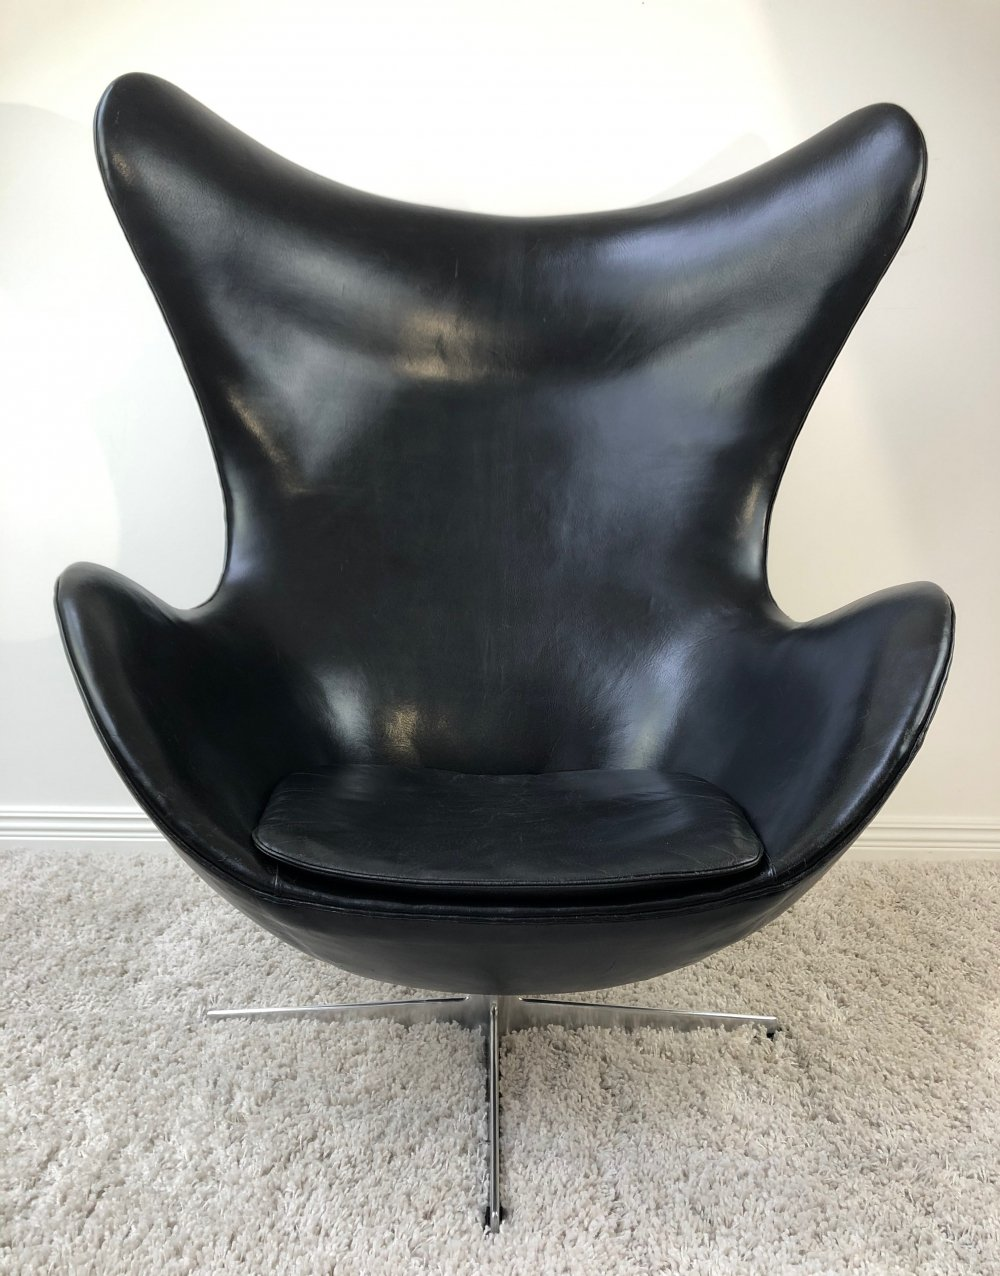 Arne Jacobsen FH-3316 Egg Chair in black patinated leather, 1960